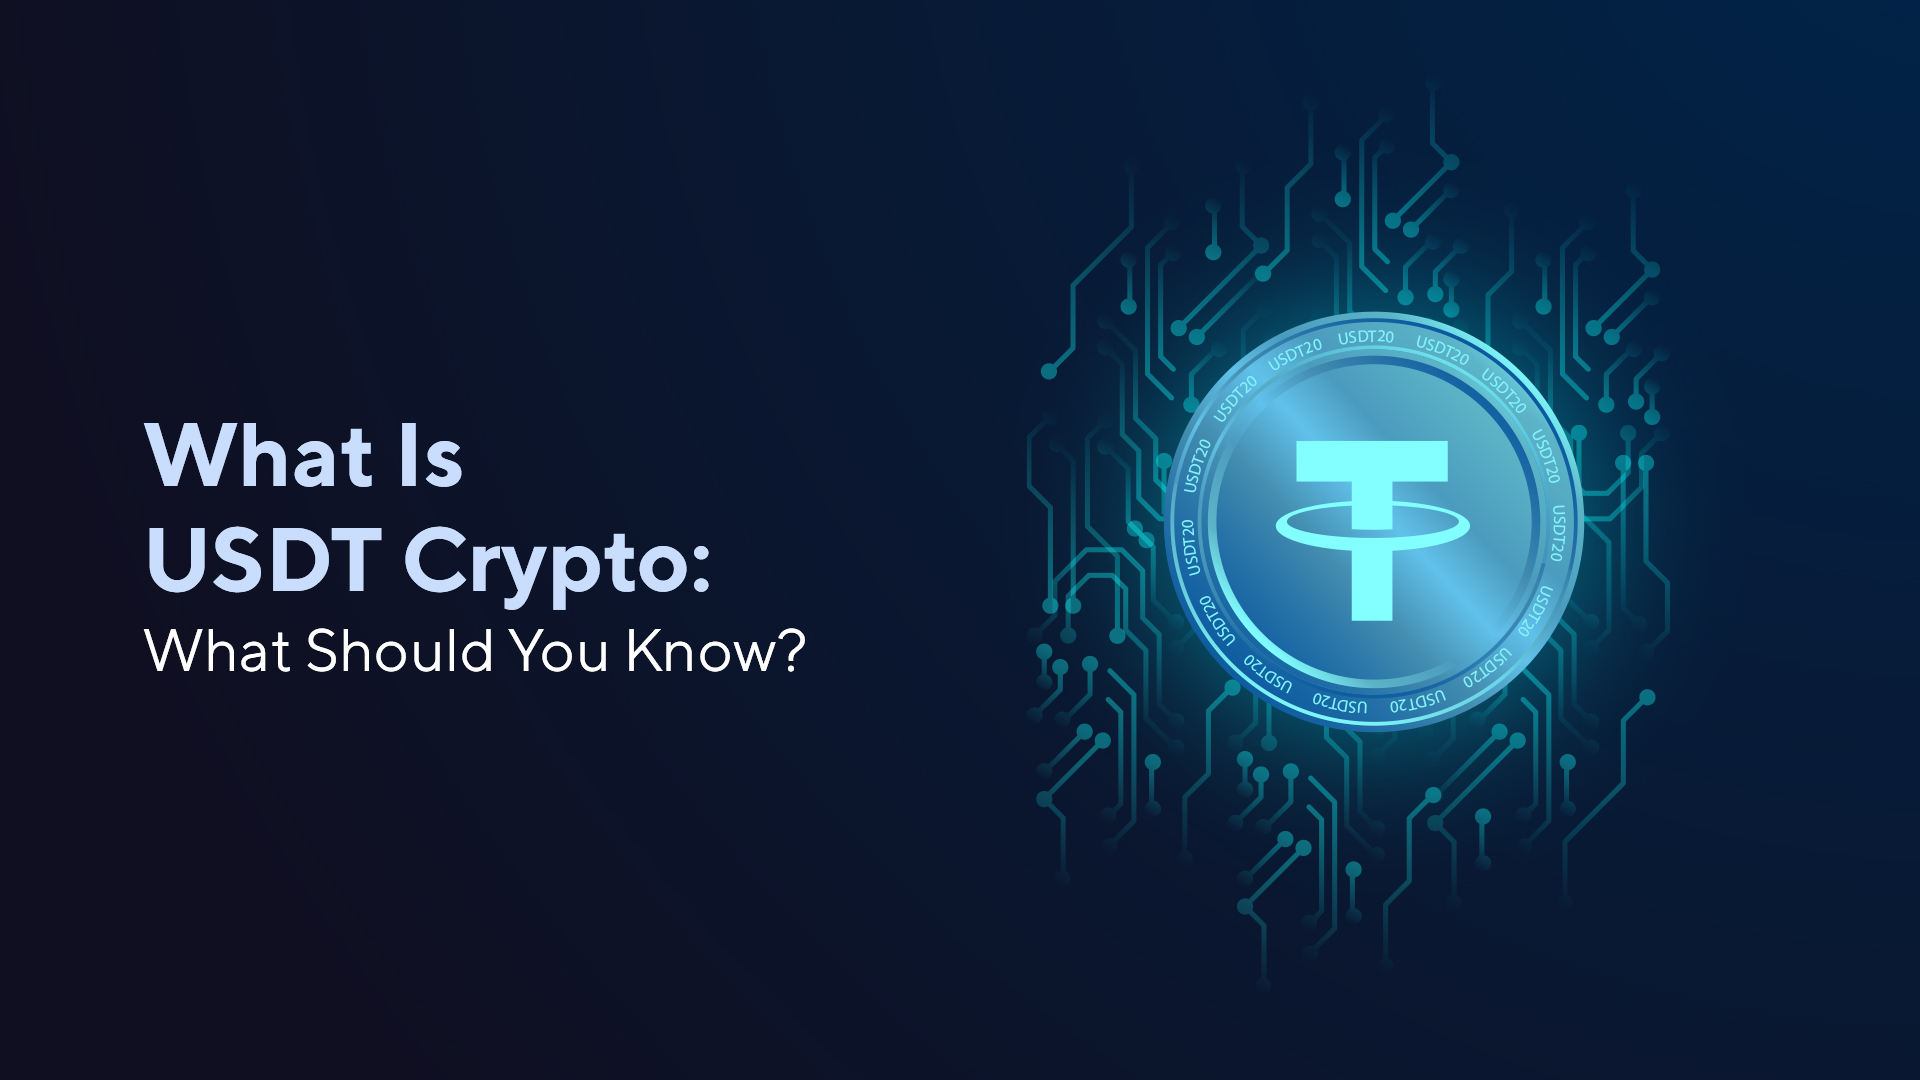 What Is USDT Crypto: What Should You Know?